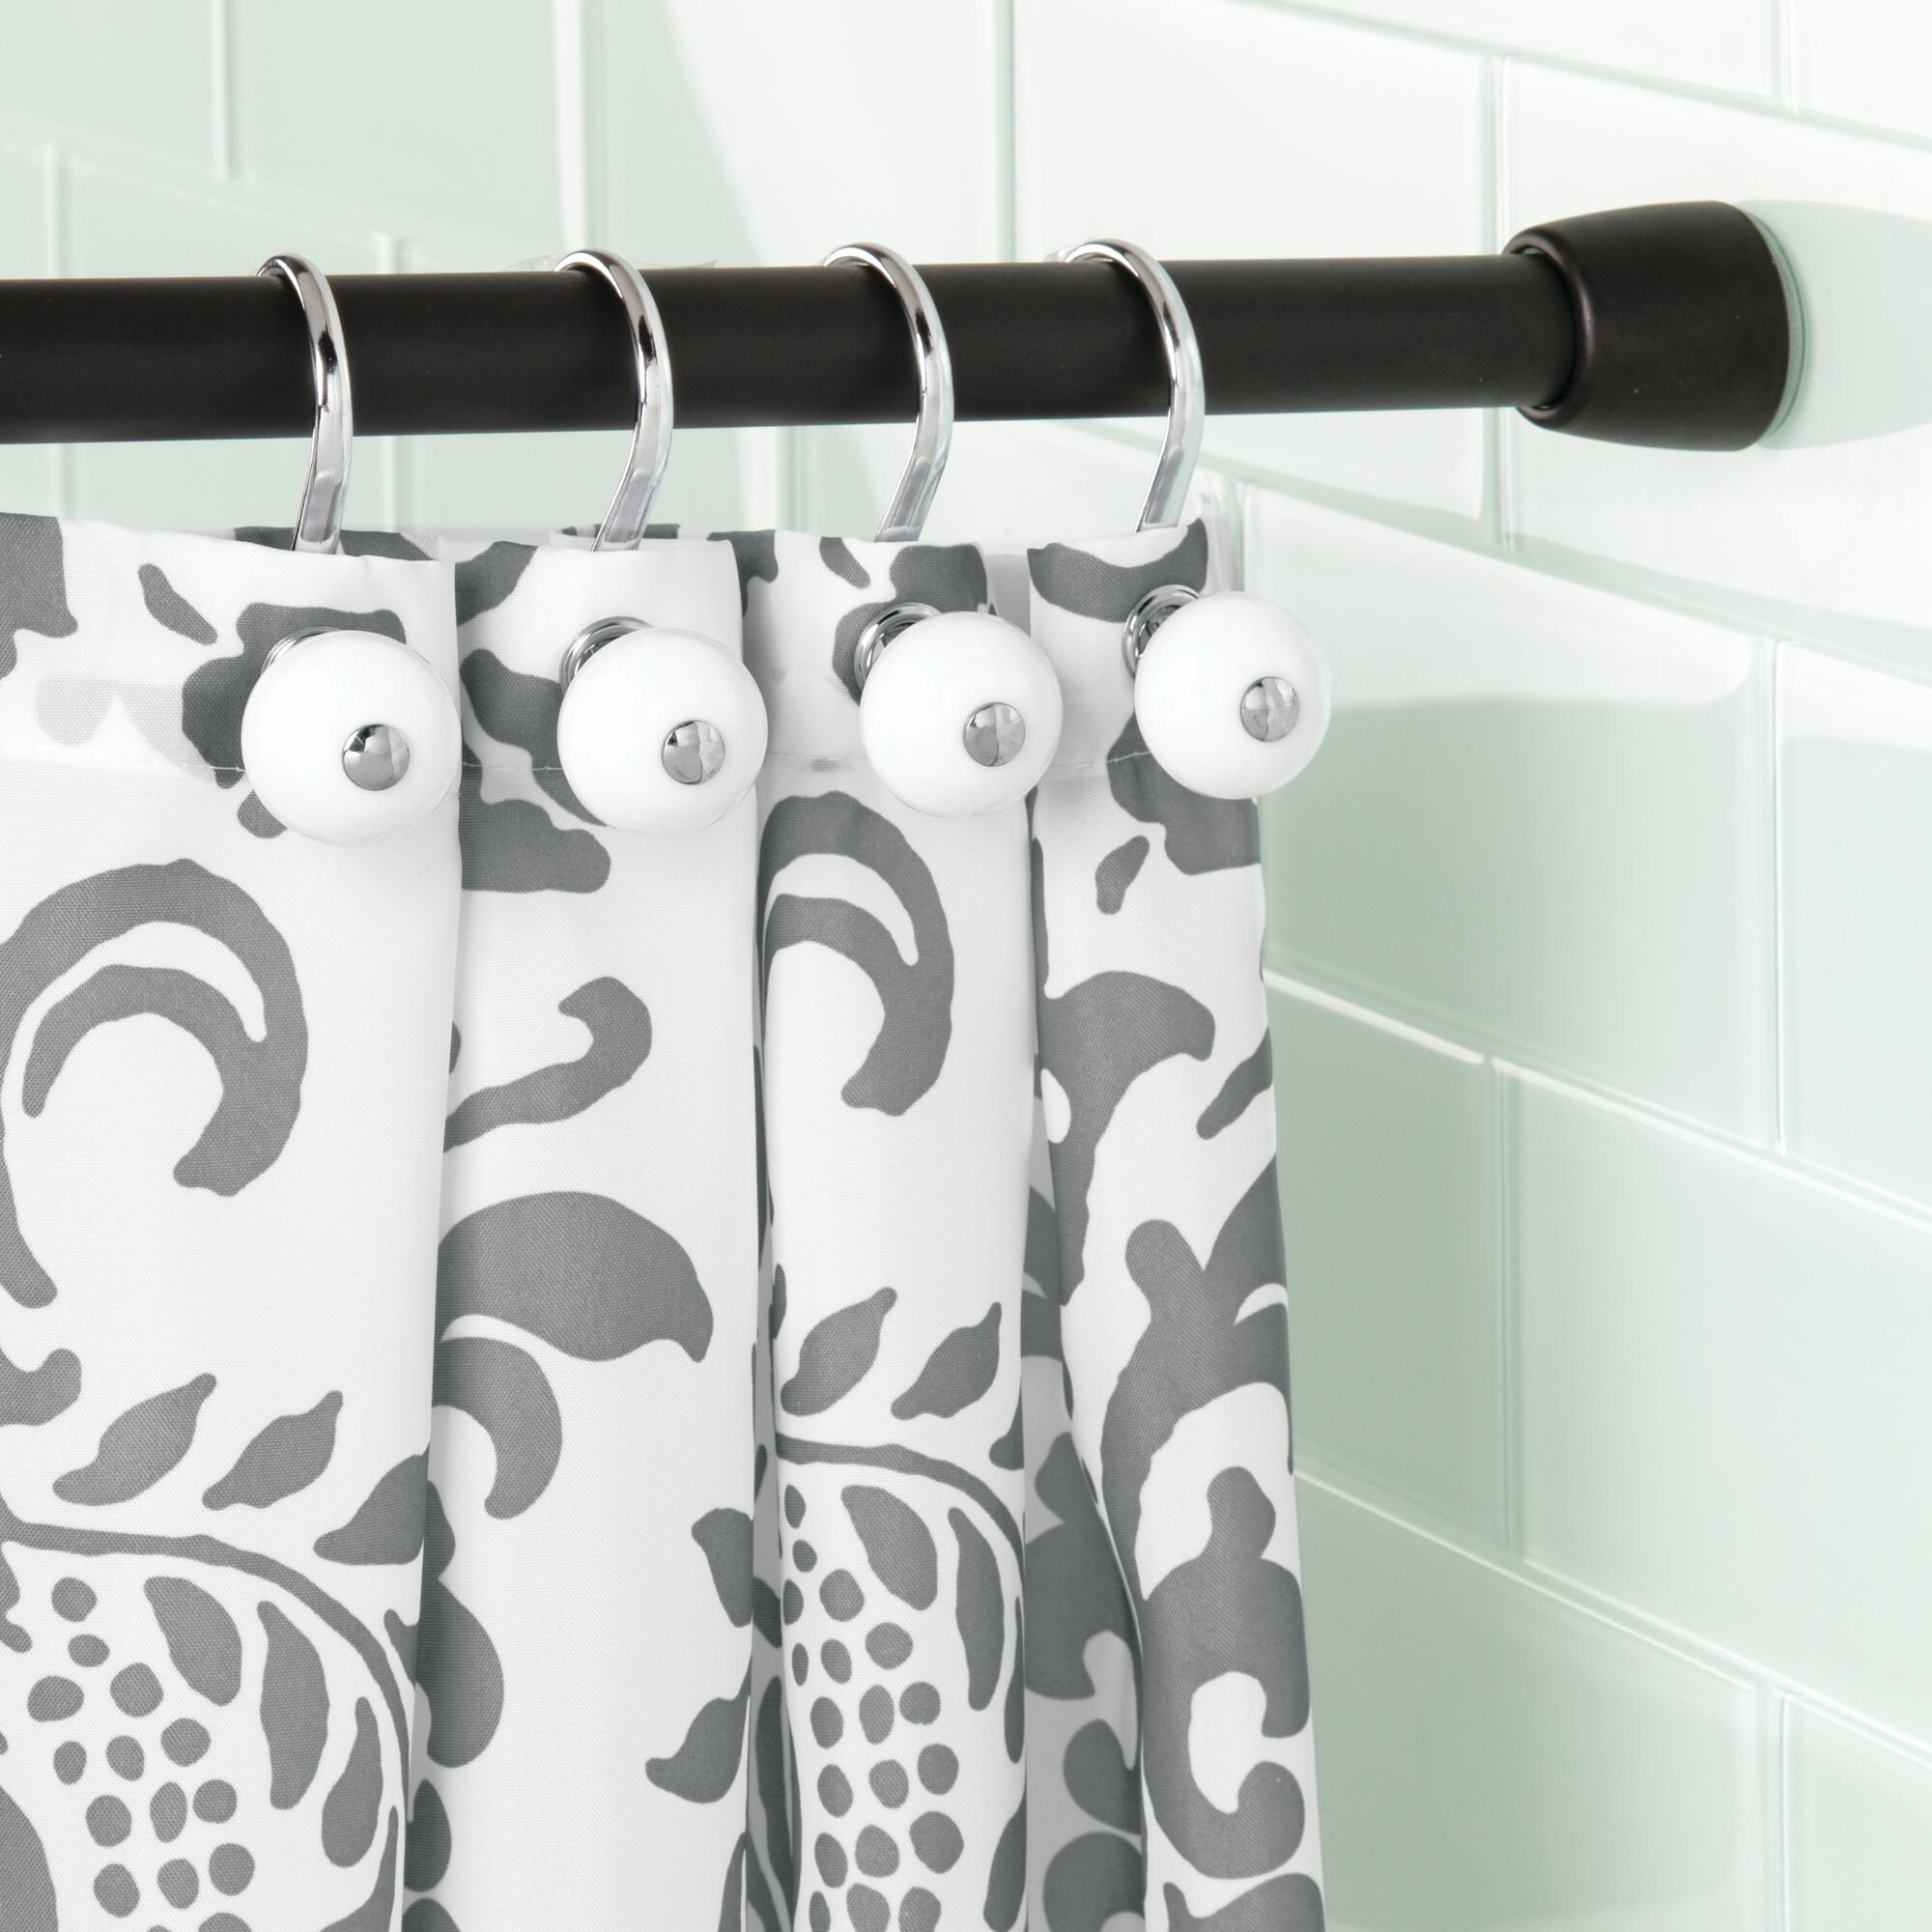 InterDesign Cameo 263 Adjustable Straight Tension Shower Curtain Rod